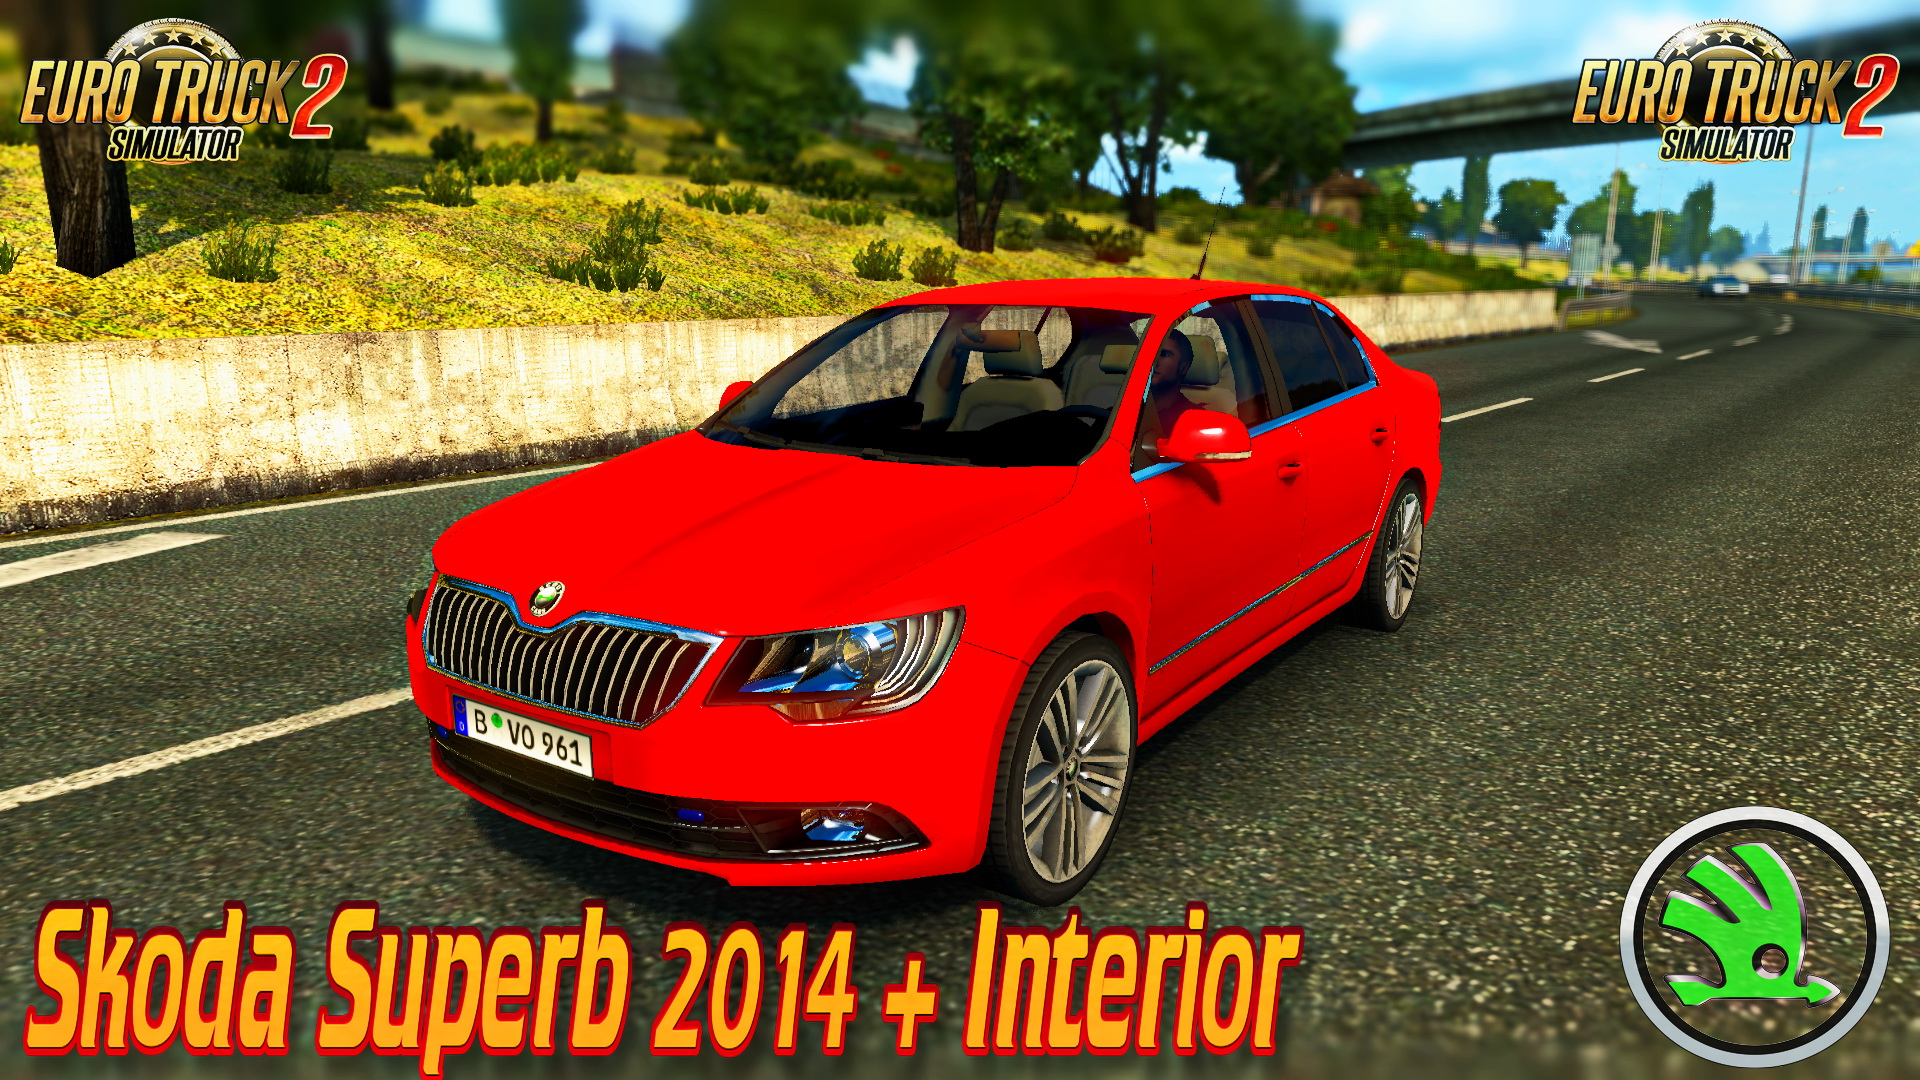 Skoda Superb 2014 + Interior for ETS 2 (Euro Truck Simulator 2)